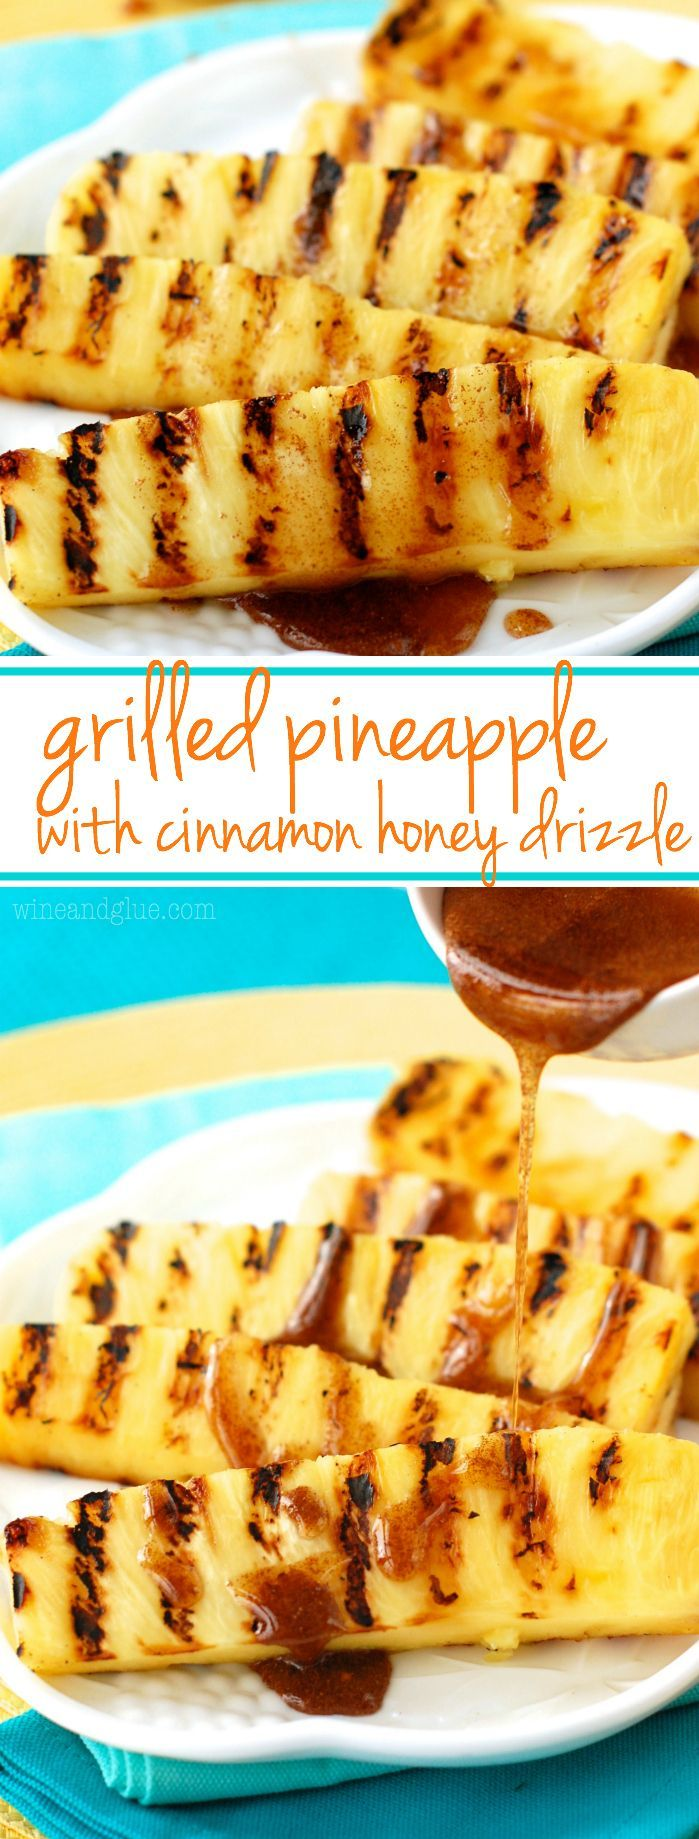 Grilled Pineapple with Cinnamon Honey Drizzle | A perfect summer side dish or light dessert! #grillingrecipes